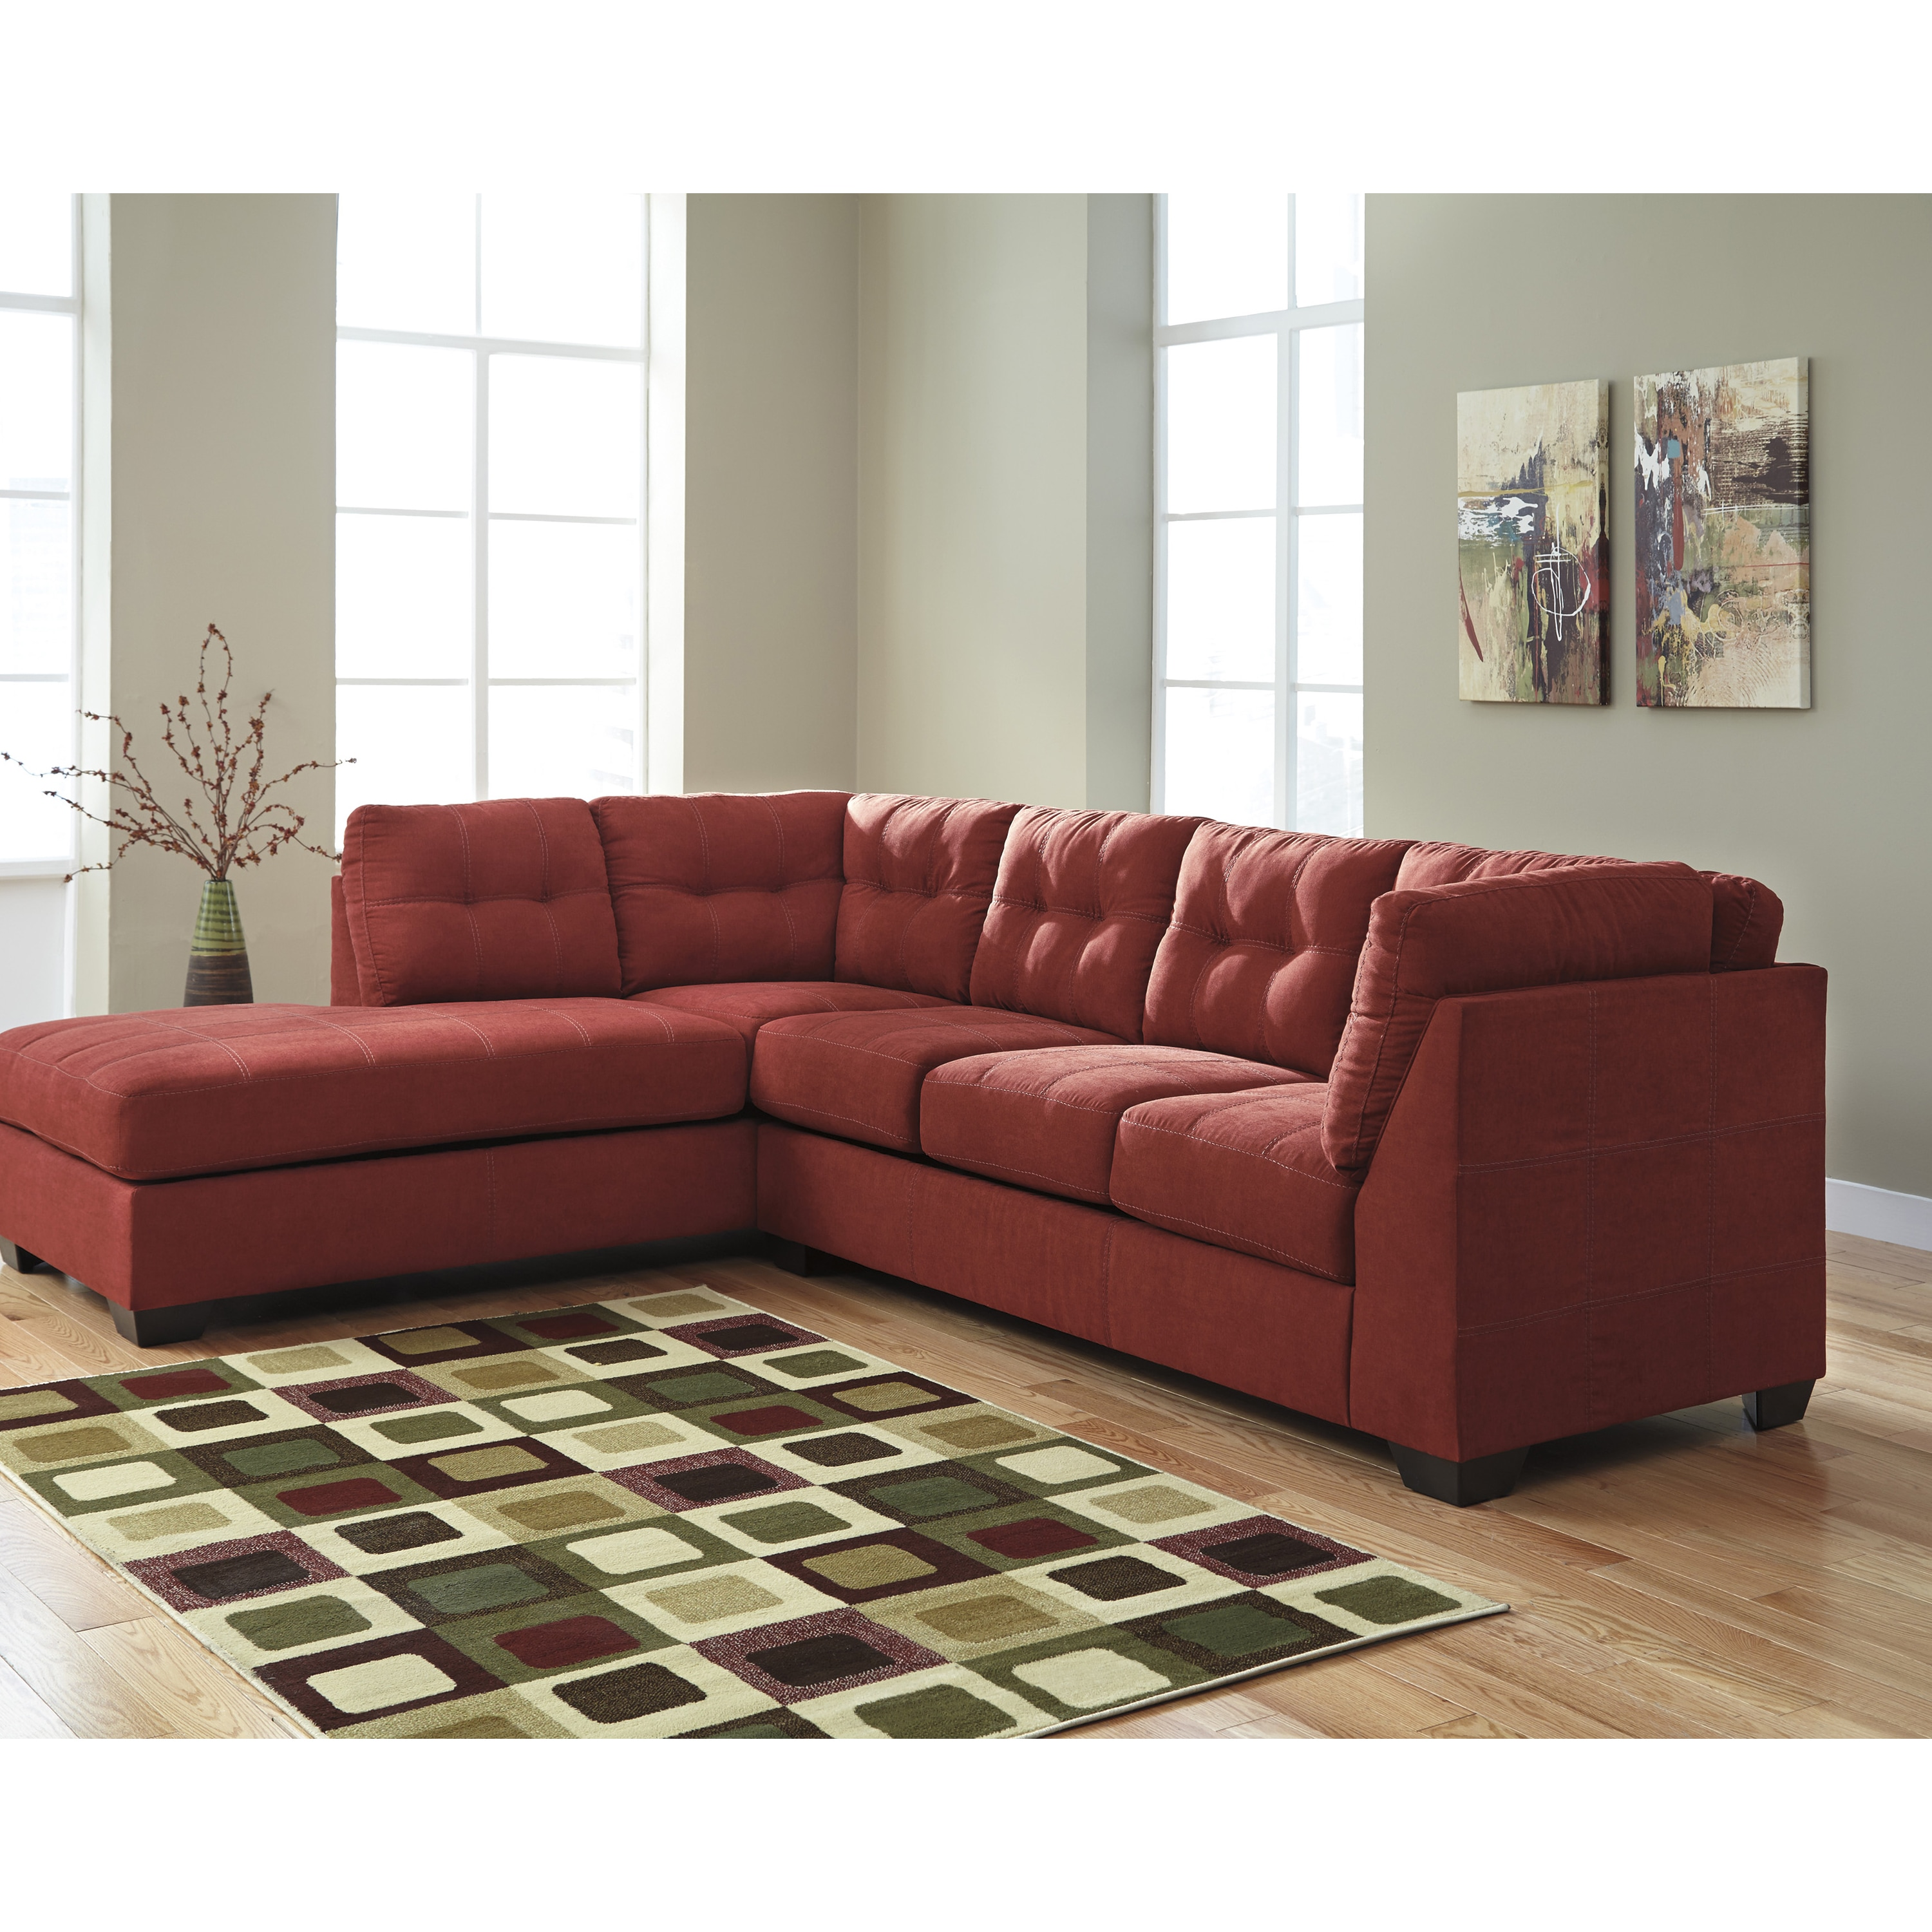 Benchcraft Maier Microfiber Sectional with Left Side Facing Chaise 5eb9d8d4 aaf1 4ea0 b772 5d187b22558c Top Result 52 Lovely Sectional Patio Furniture Clearance Photography 2017 Pkt6